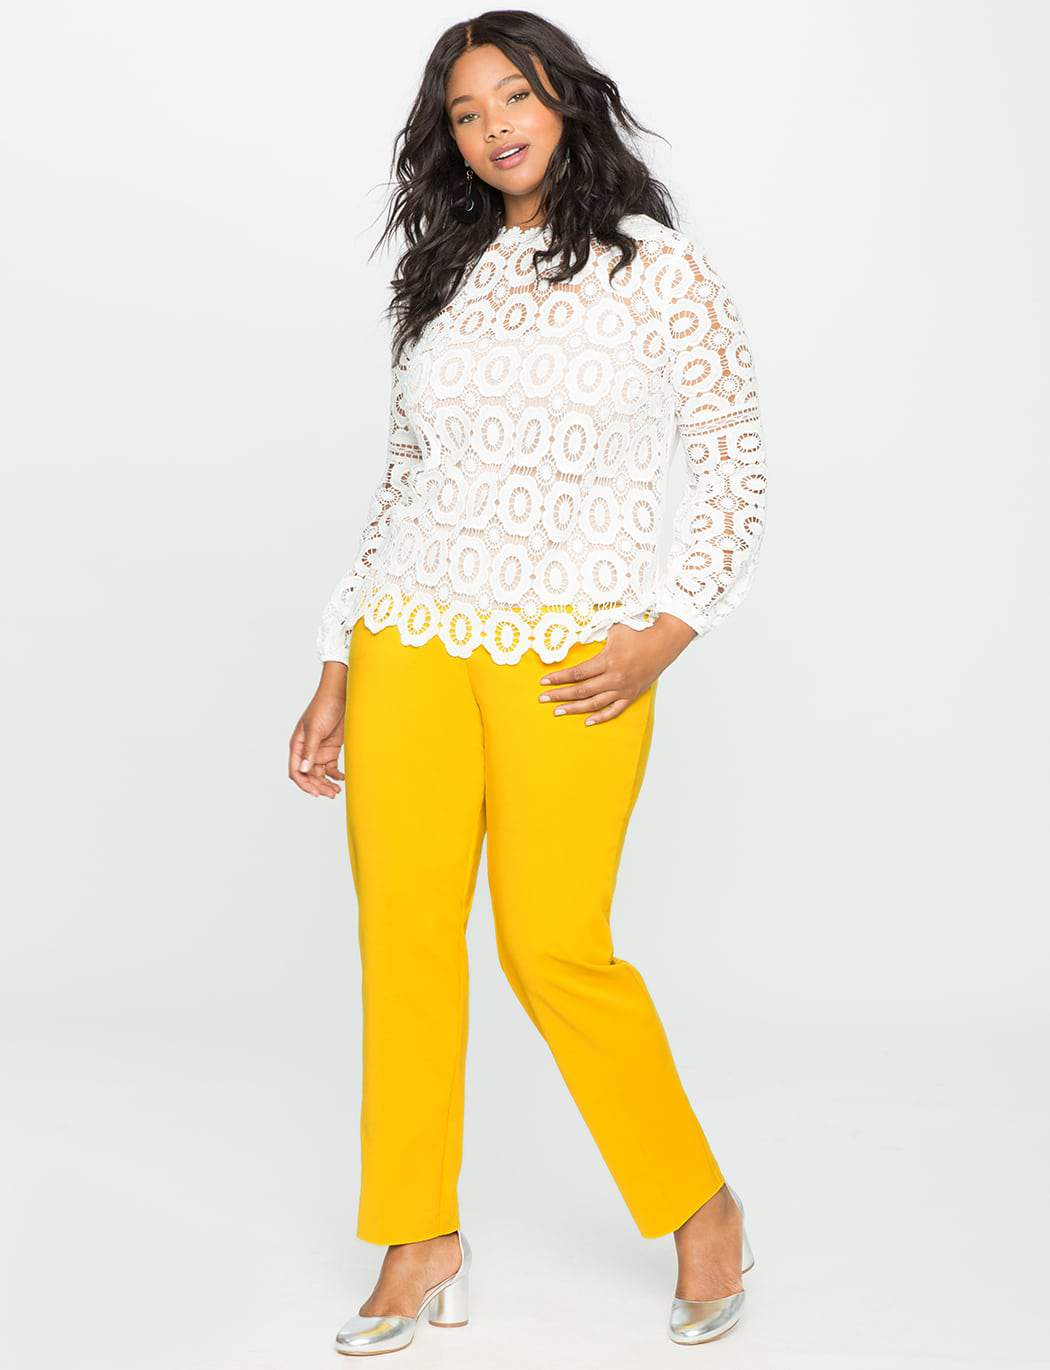 Kady Fit plus size Double-Weave Pant at Eloquii